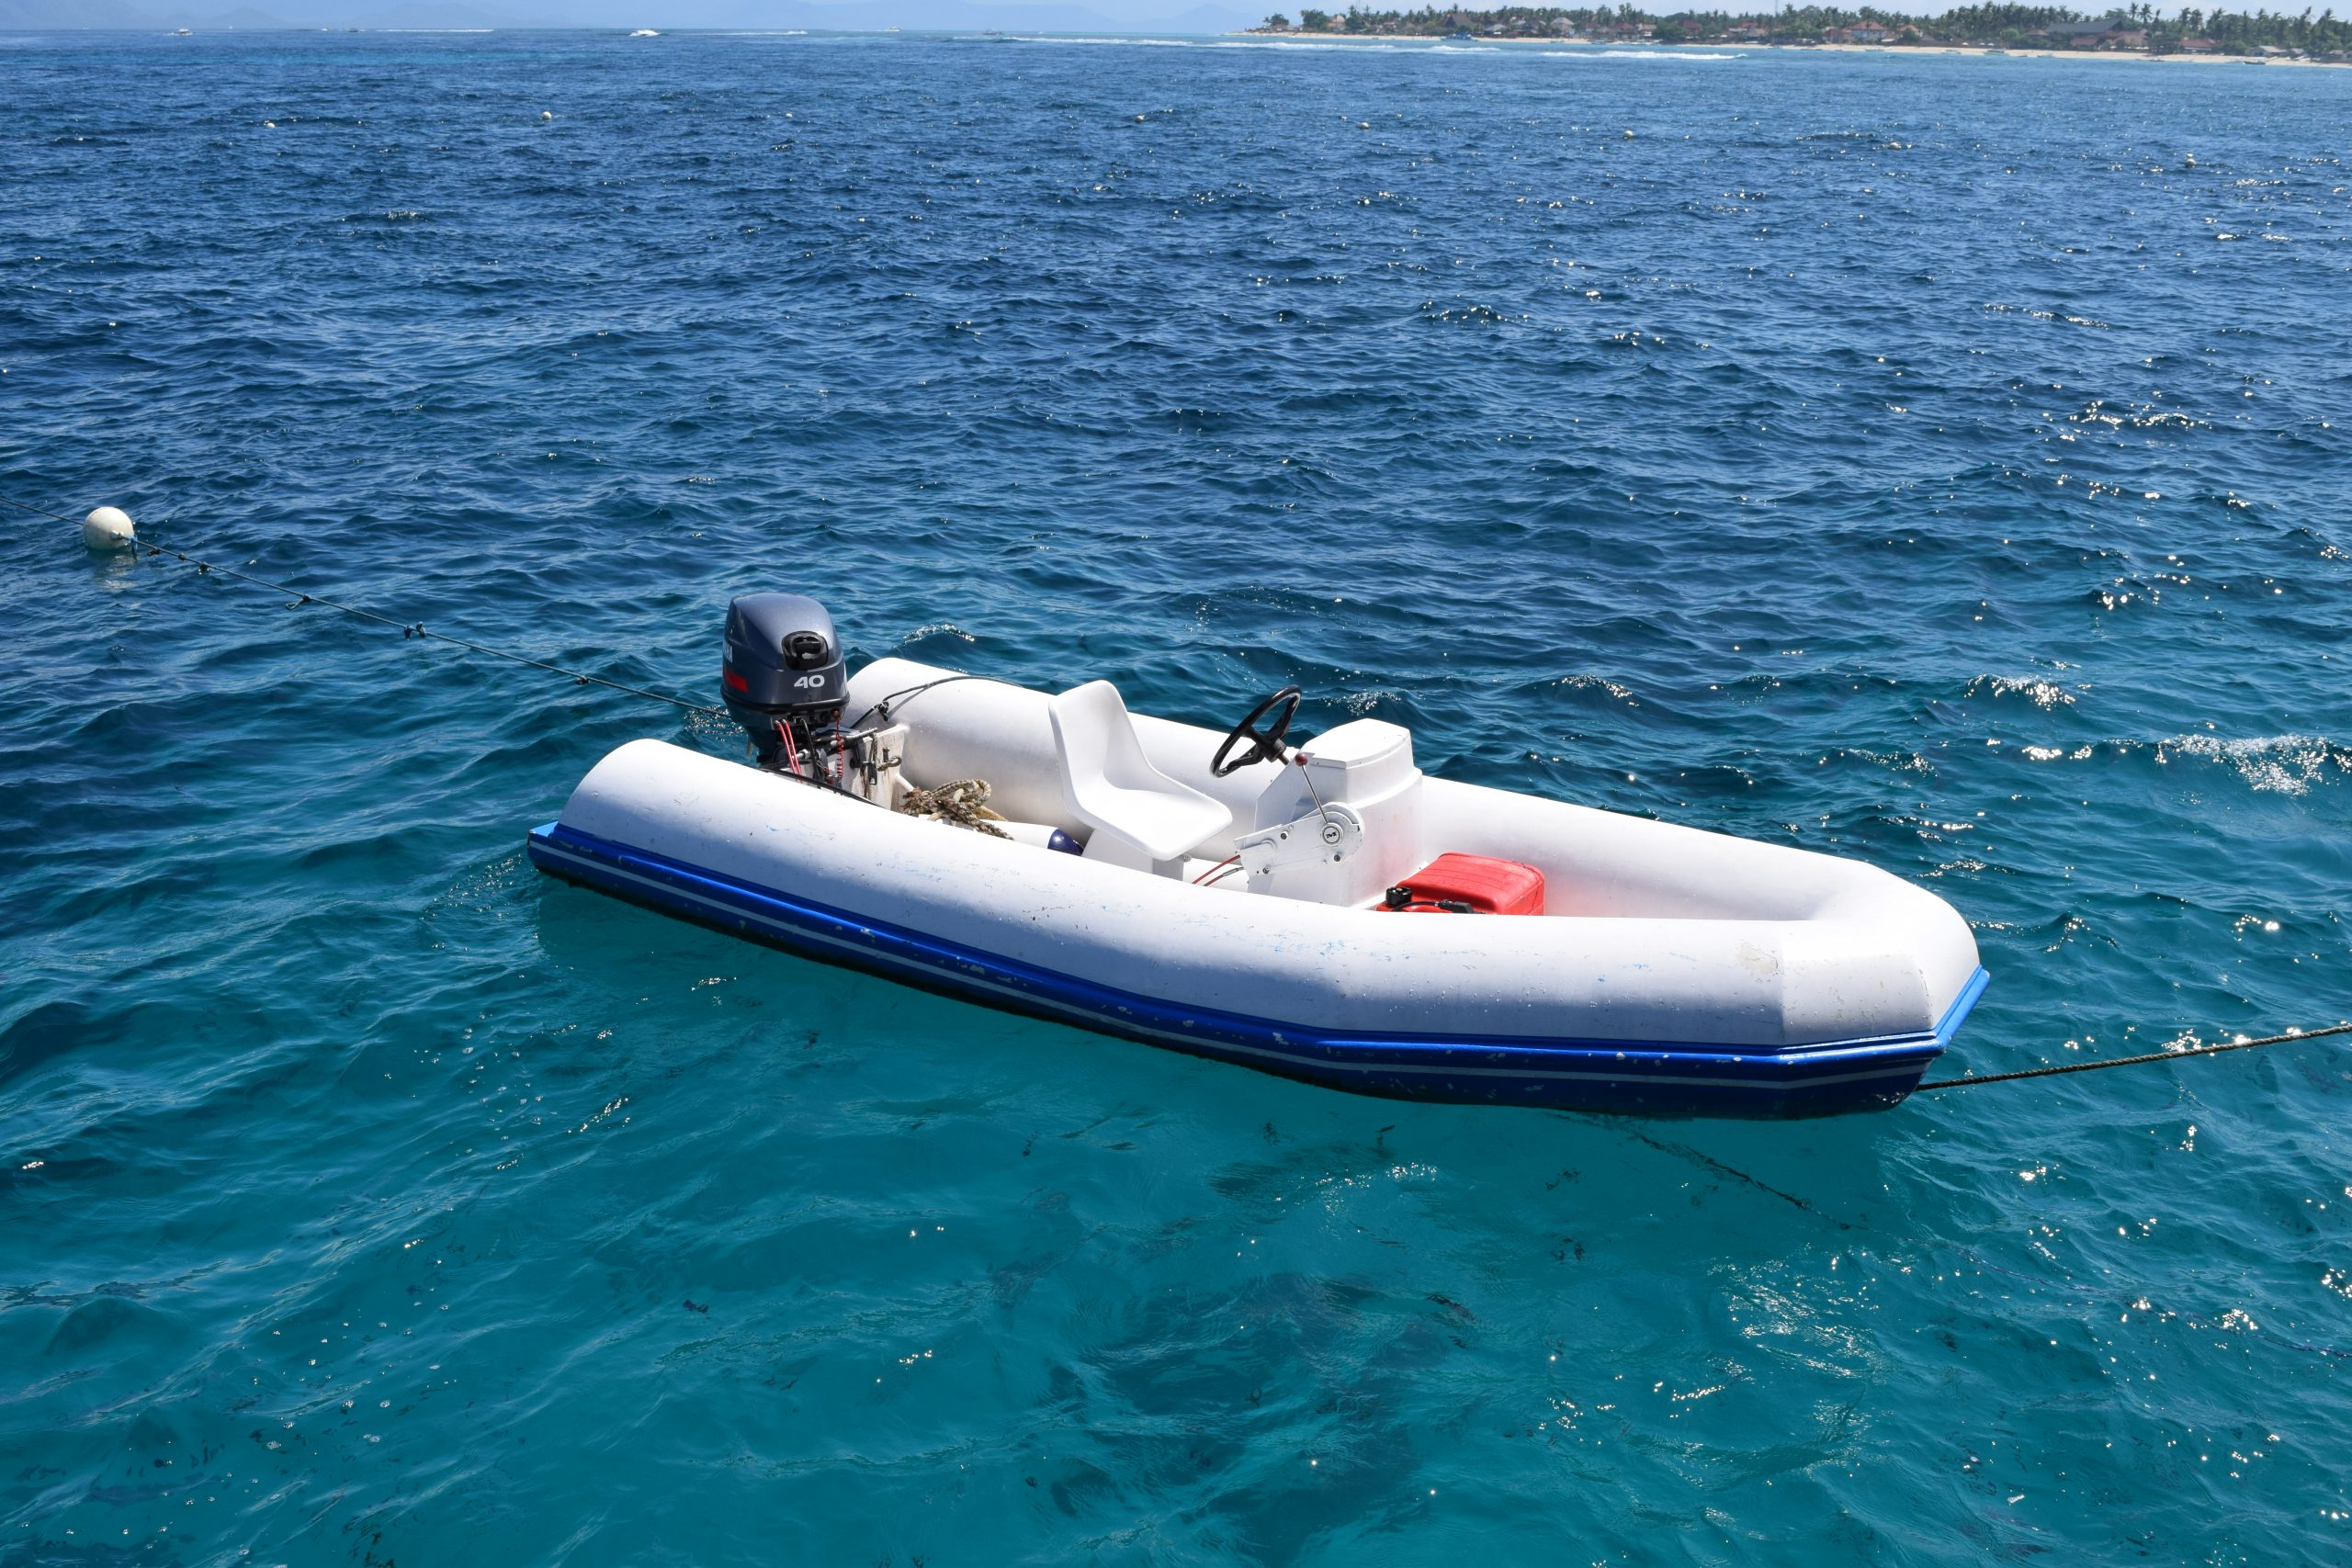 A motor boat floating in a sea